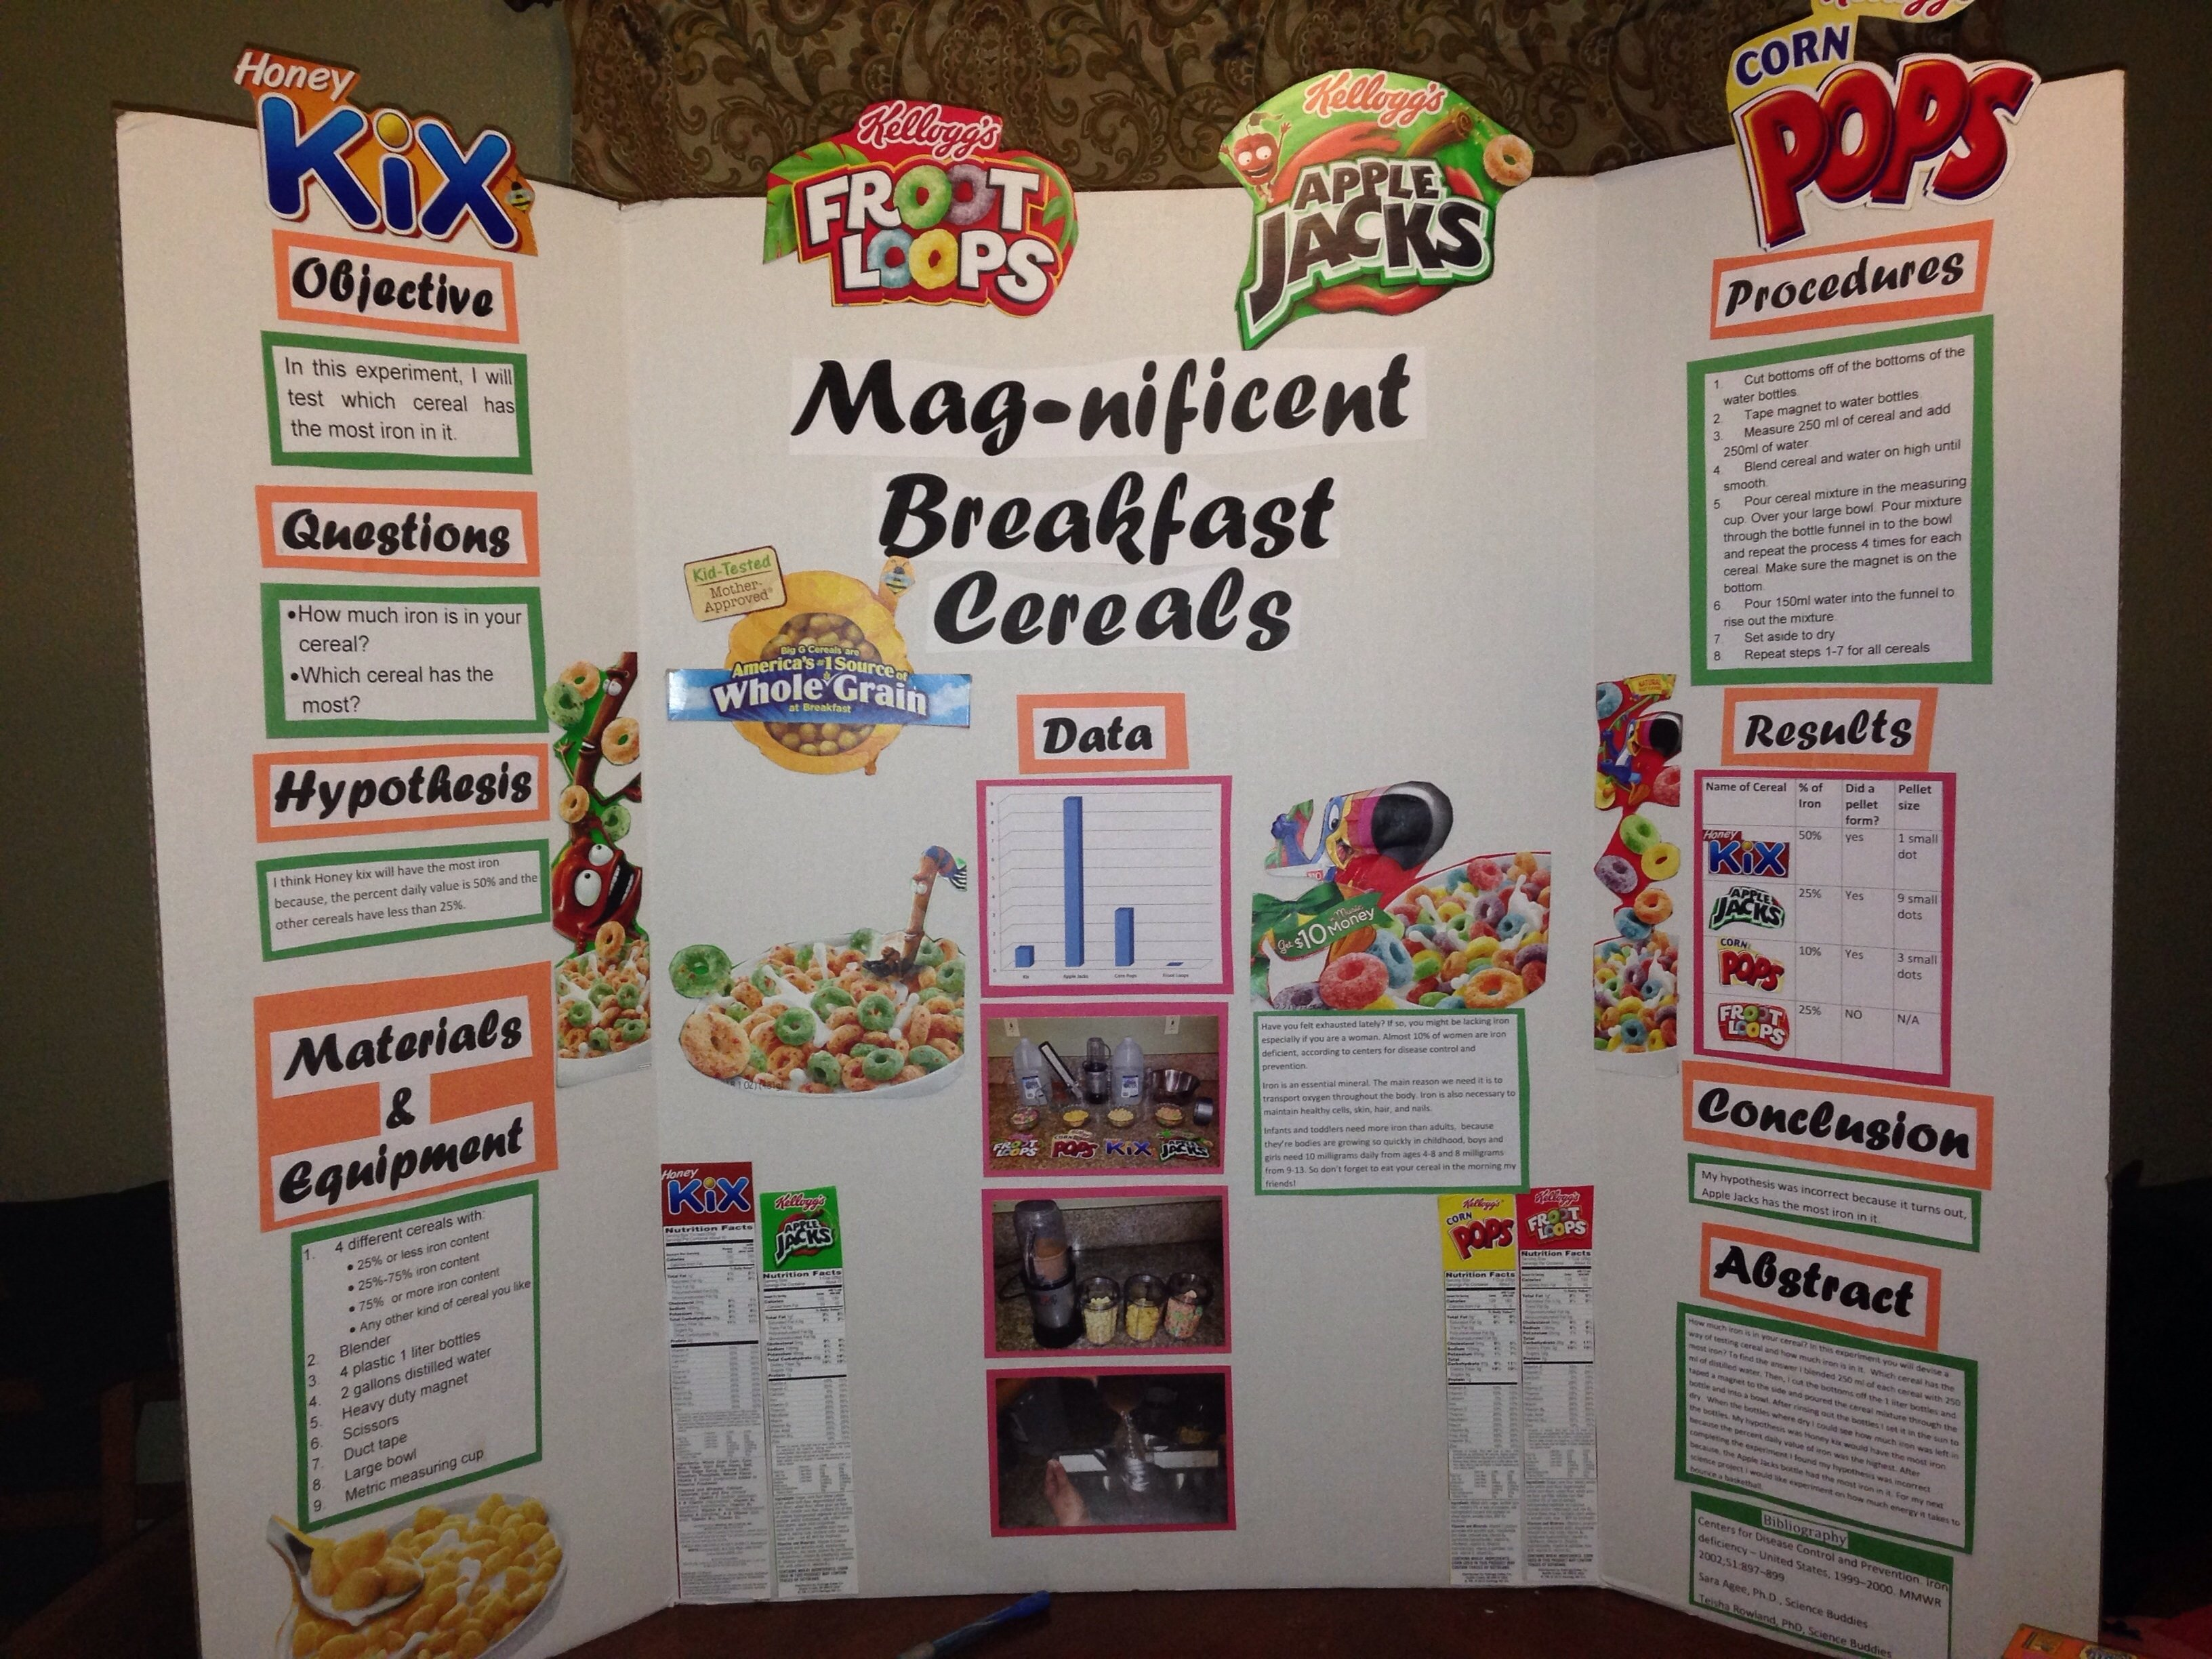 10 Stylish Middle School Science Fair Projects Ideas 8Th Grade chemistry projects ideas chemistry science fair project ideas nerdy 2021